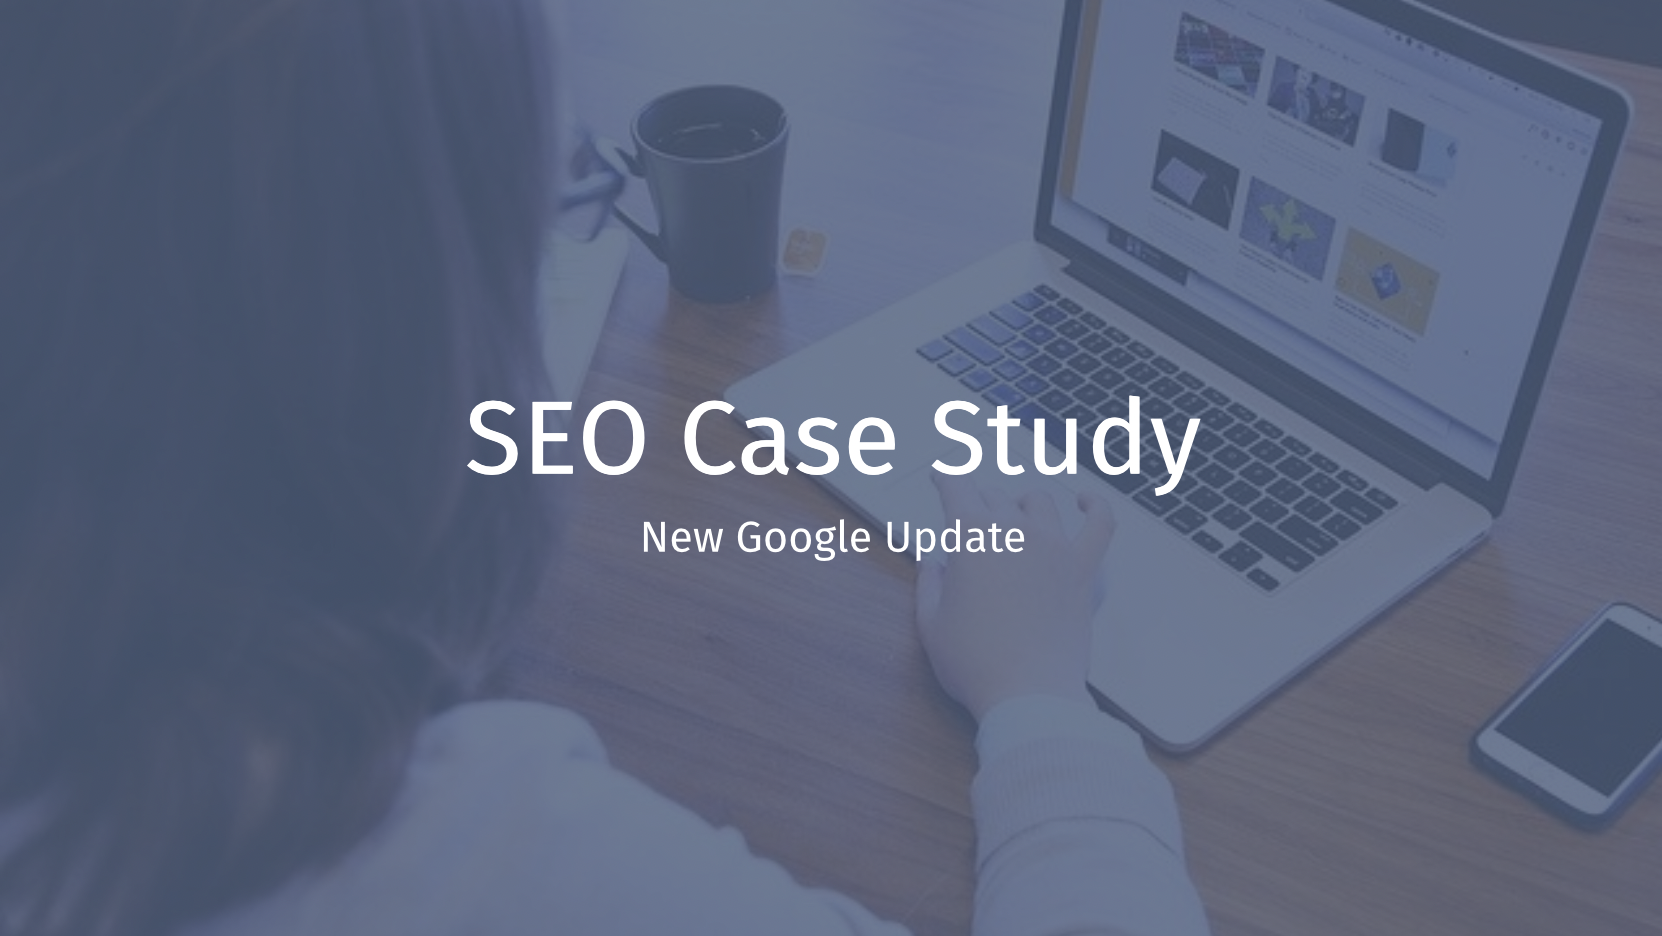 SEO is a science. It helps you rank your website to bring in more traffic and interest from potential clients. Sure, it can seem like there's an infinite amount of resources out there to choose from, but what if we told you that we already have one for you?! Meet our SEO Case Study Template - the perfect starting point for any social media marketer or professional marketing their services! Rock on with demonstrations of best practices while making your message clear as day. Includes an informative deck template complete with slides on client-specific projects showcasing results, insider tips, how-tos, lessons learned and best practices based in data & research. Brought to by: Your friends here at Decktopus.